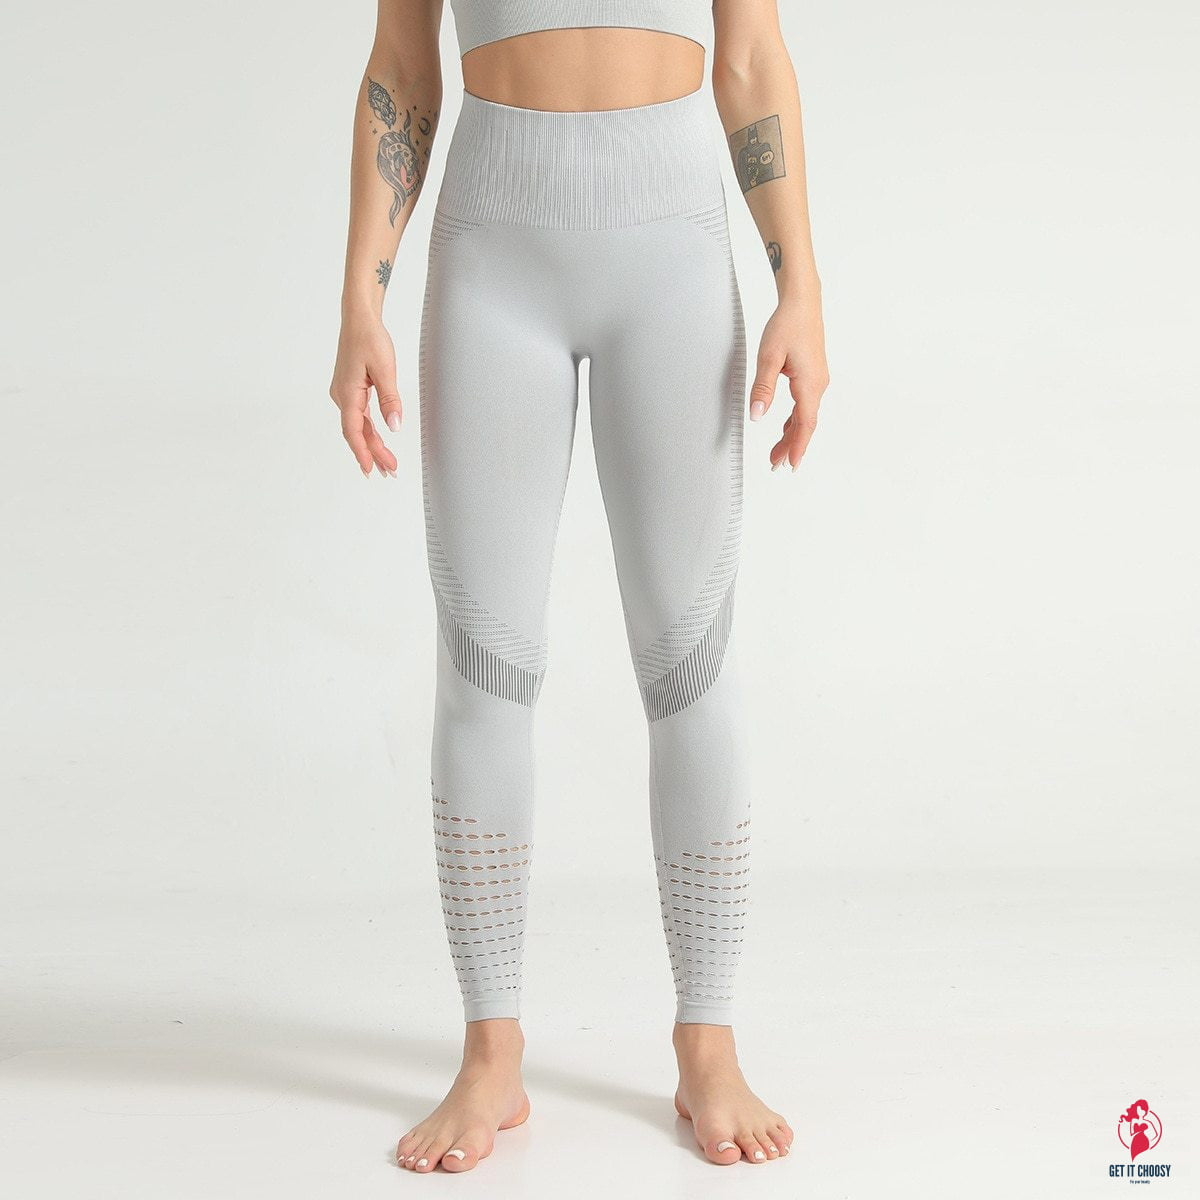 Hollow Out Fitness Gym Leggings Women Seamless Energy Tights Workout